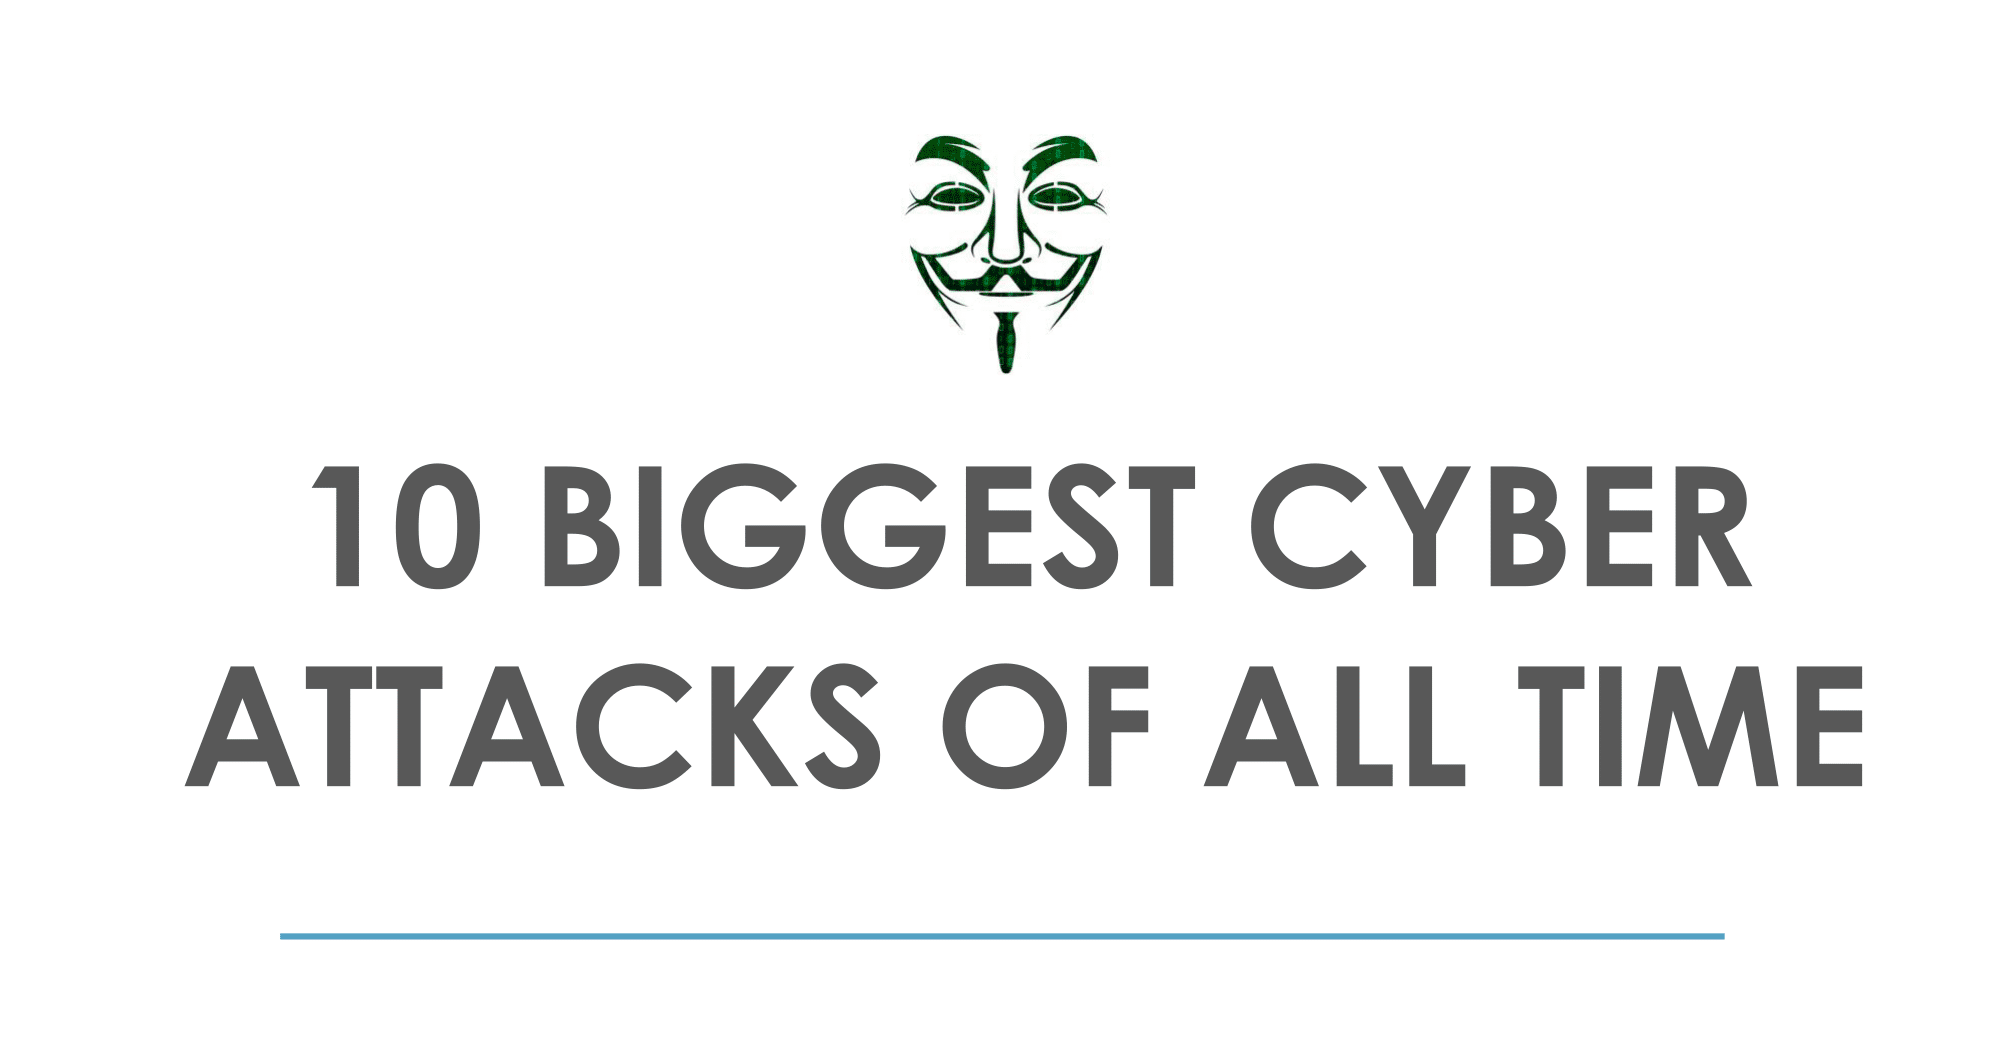 10 Biggest Cyber Attacks of All Time (Infographic)